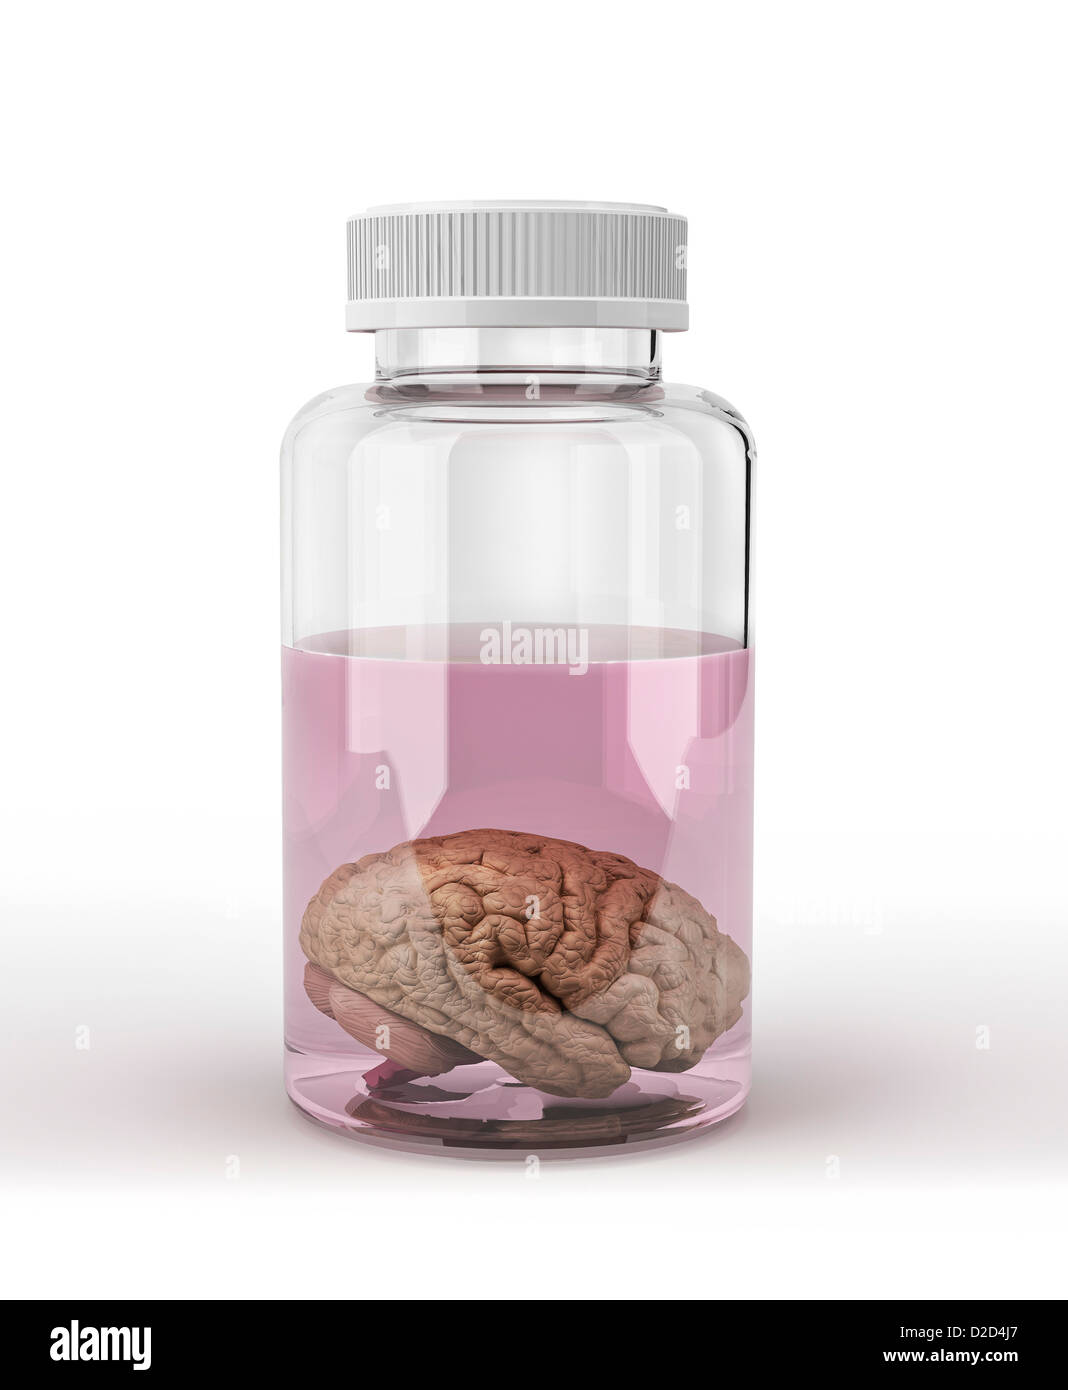 Preserved brain computer artwork - Stock Image